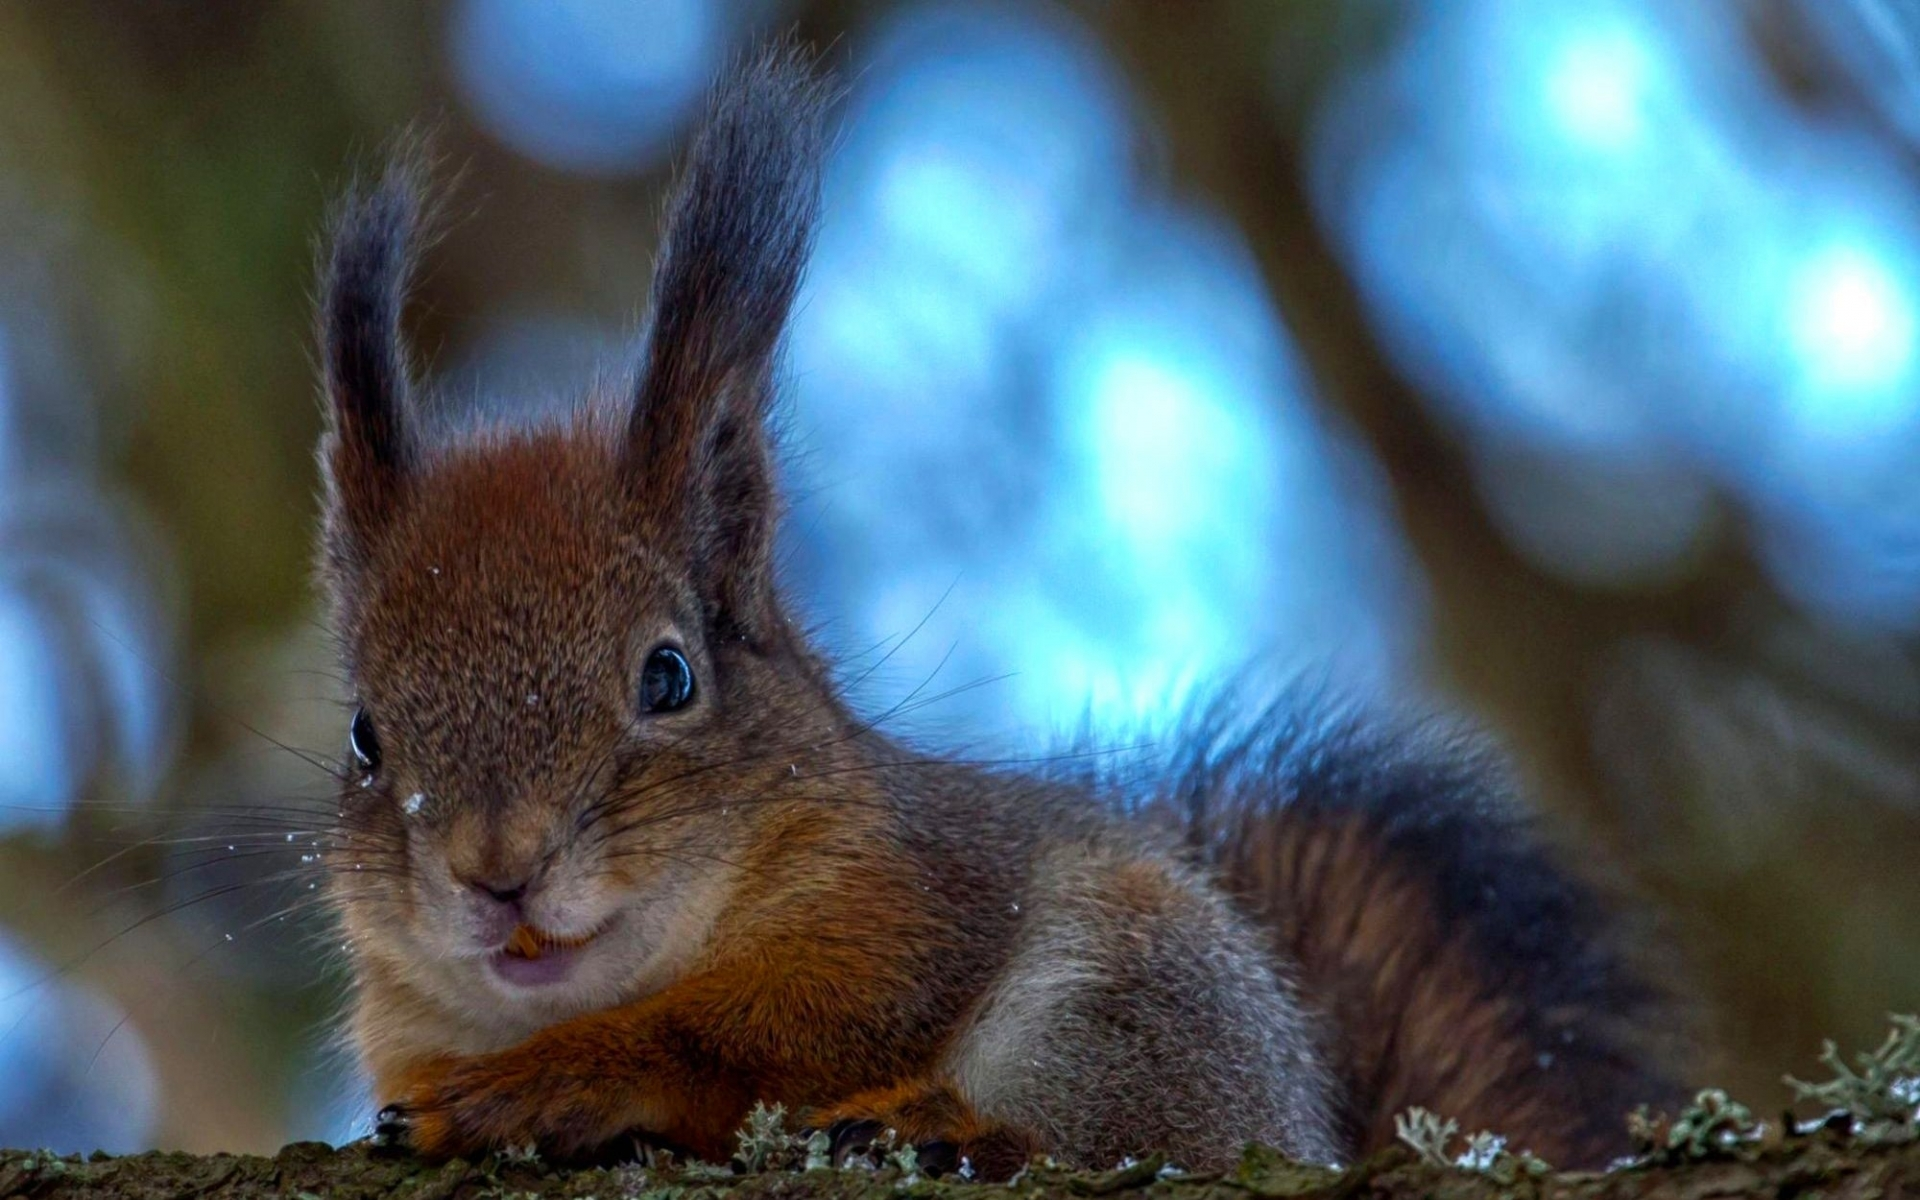 45756 download wallpaper Animals, Squirrel screensavers and pictures for free